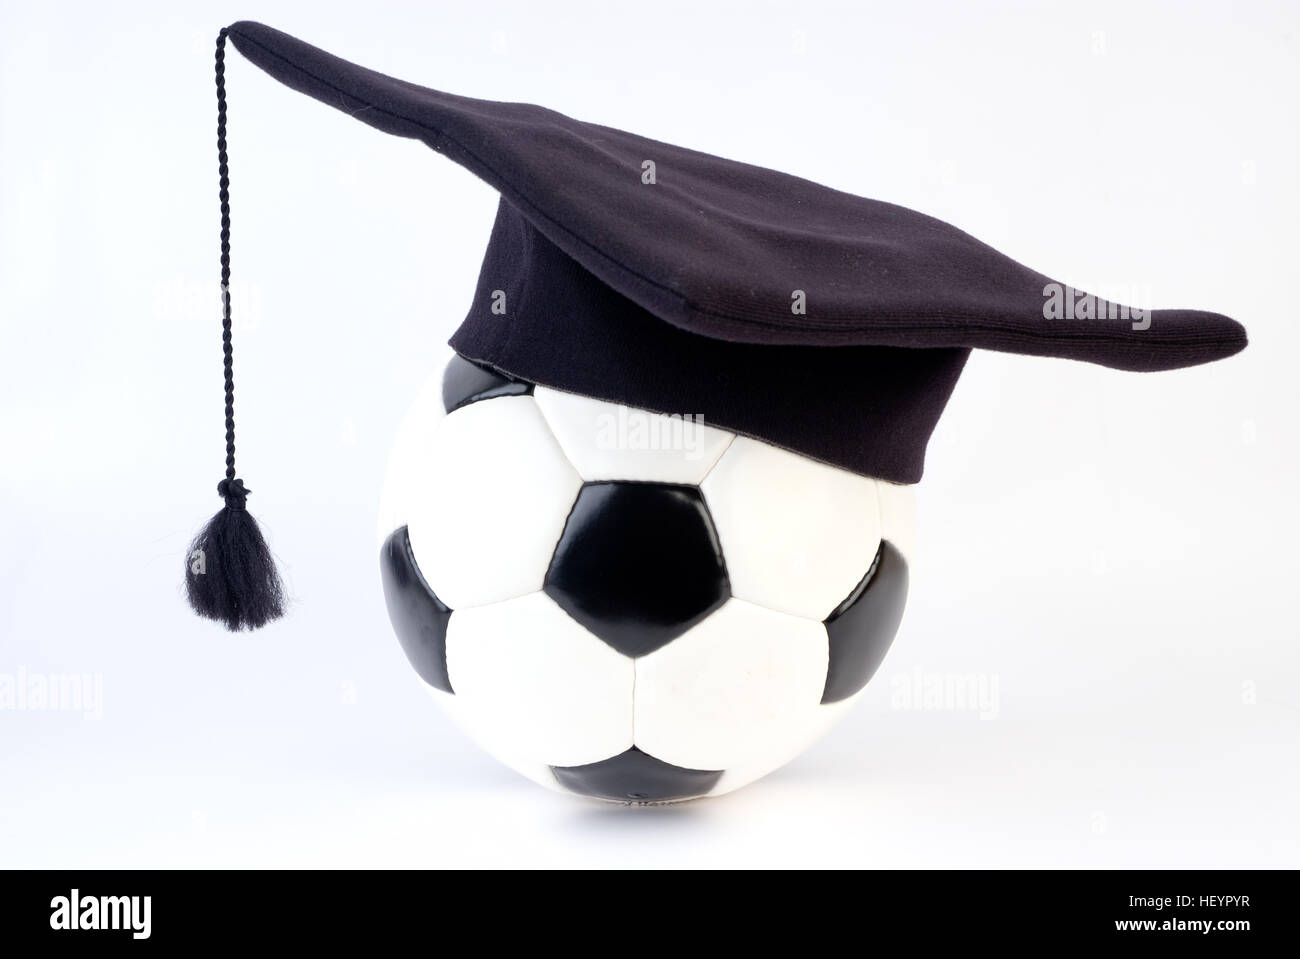 Symbol for football image collections symbol and sign ideas football and a graduates cap mortarboard symbol for football football and a graduates cap mortarboard symbol buycottarizona